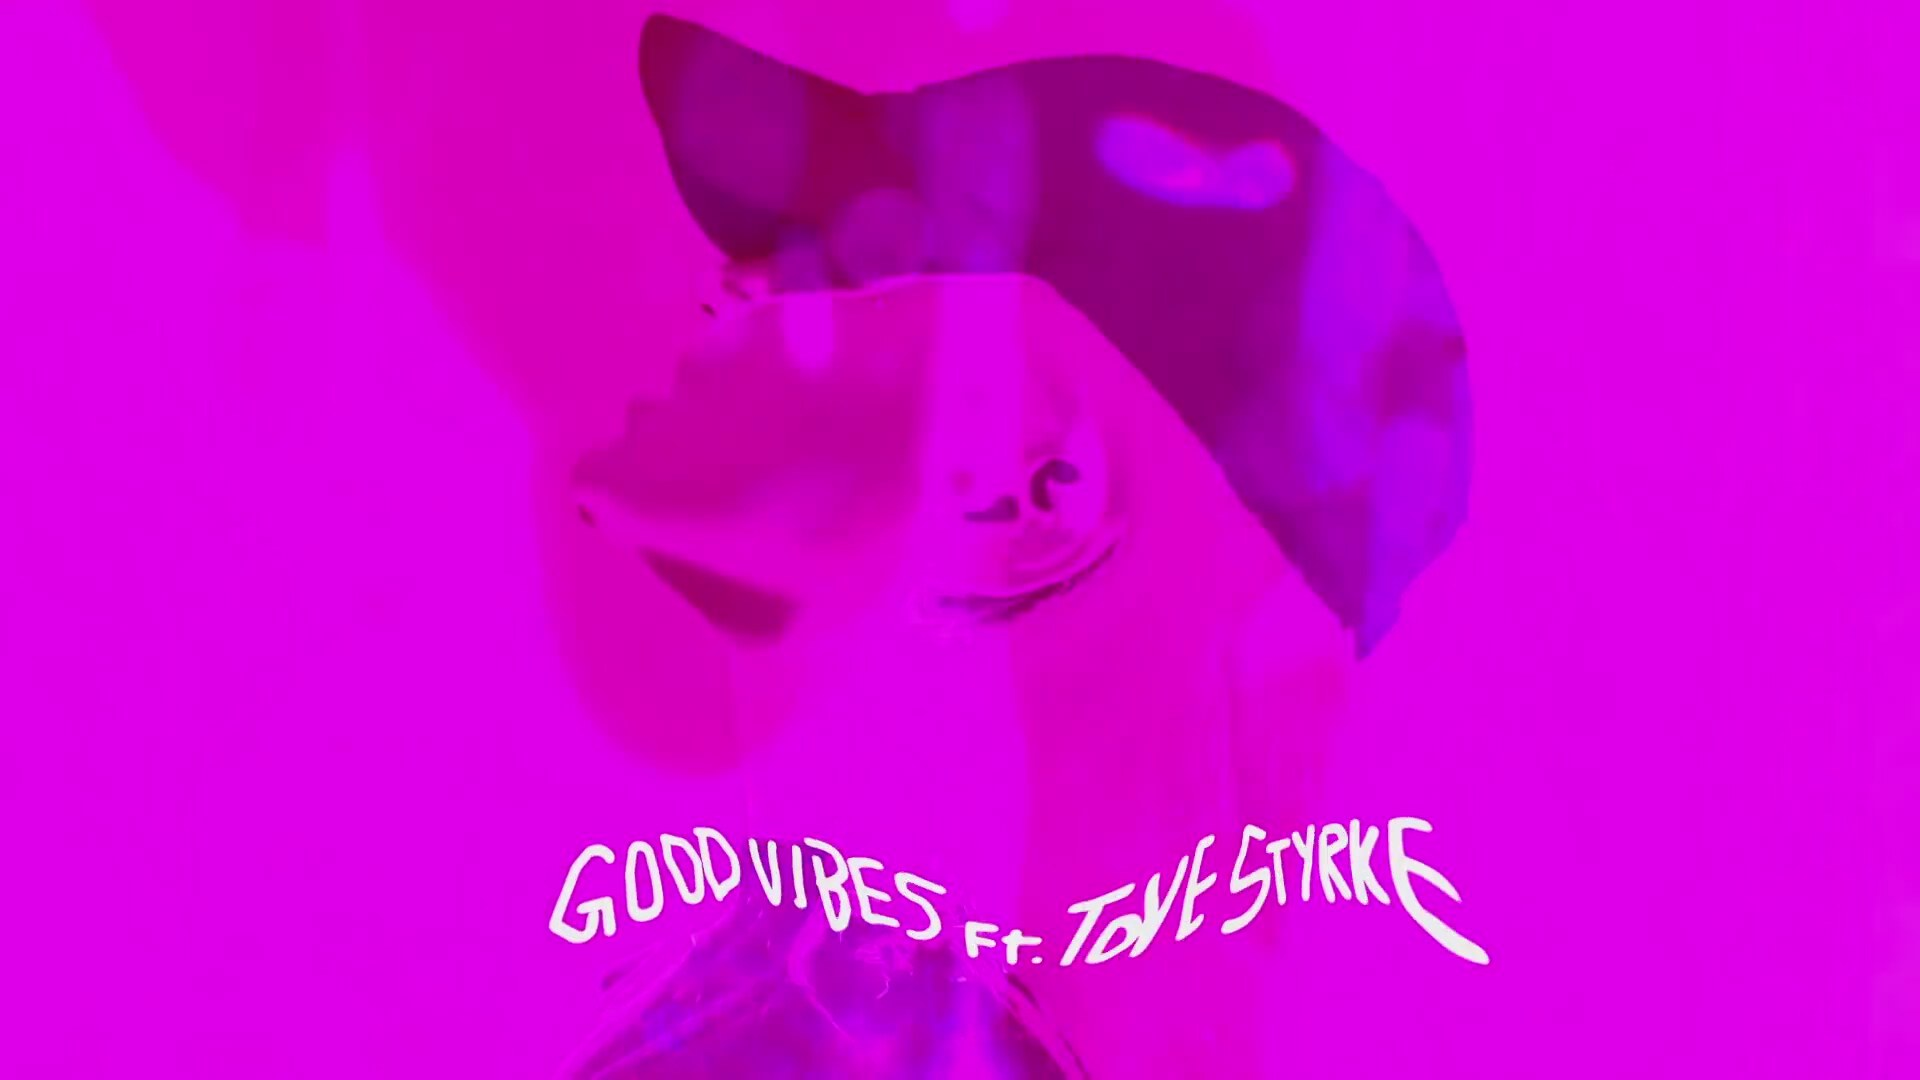 Alma Feat. Tove Styrke - Good Vibes